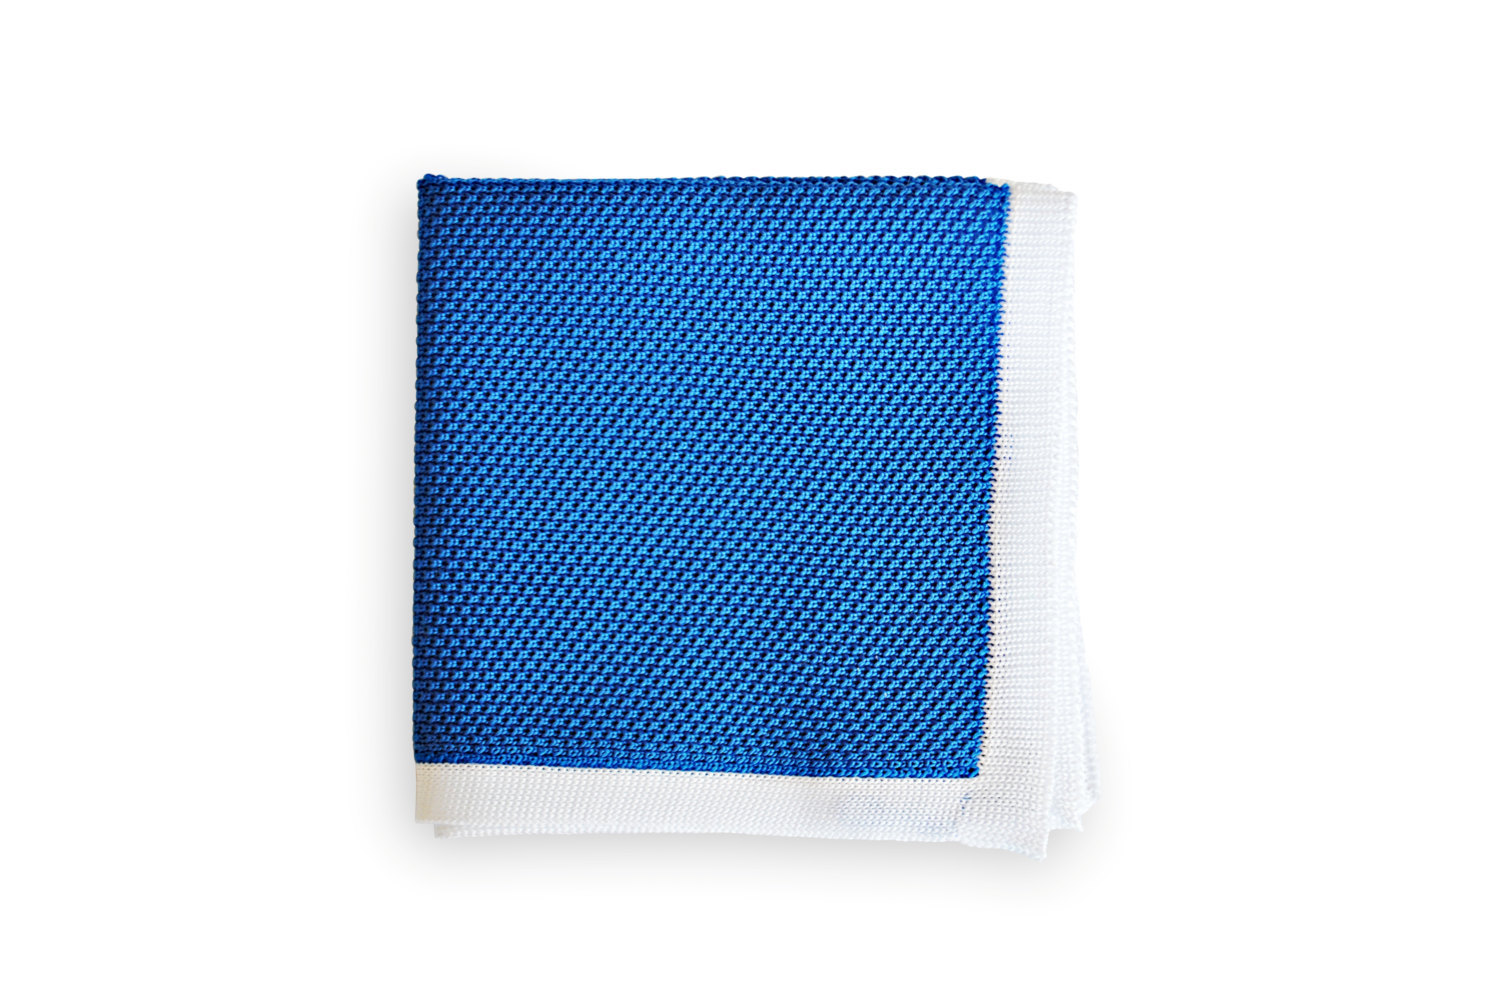 Frederick Thomas knitted Cobalt Blue with White Edging pocket square with white